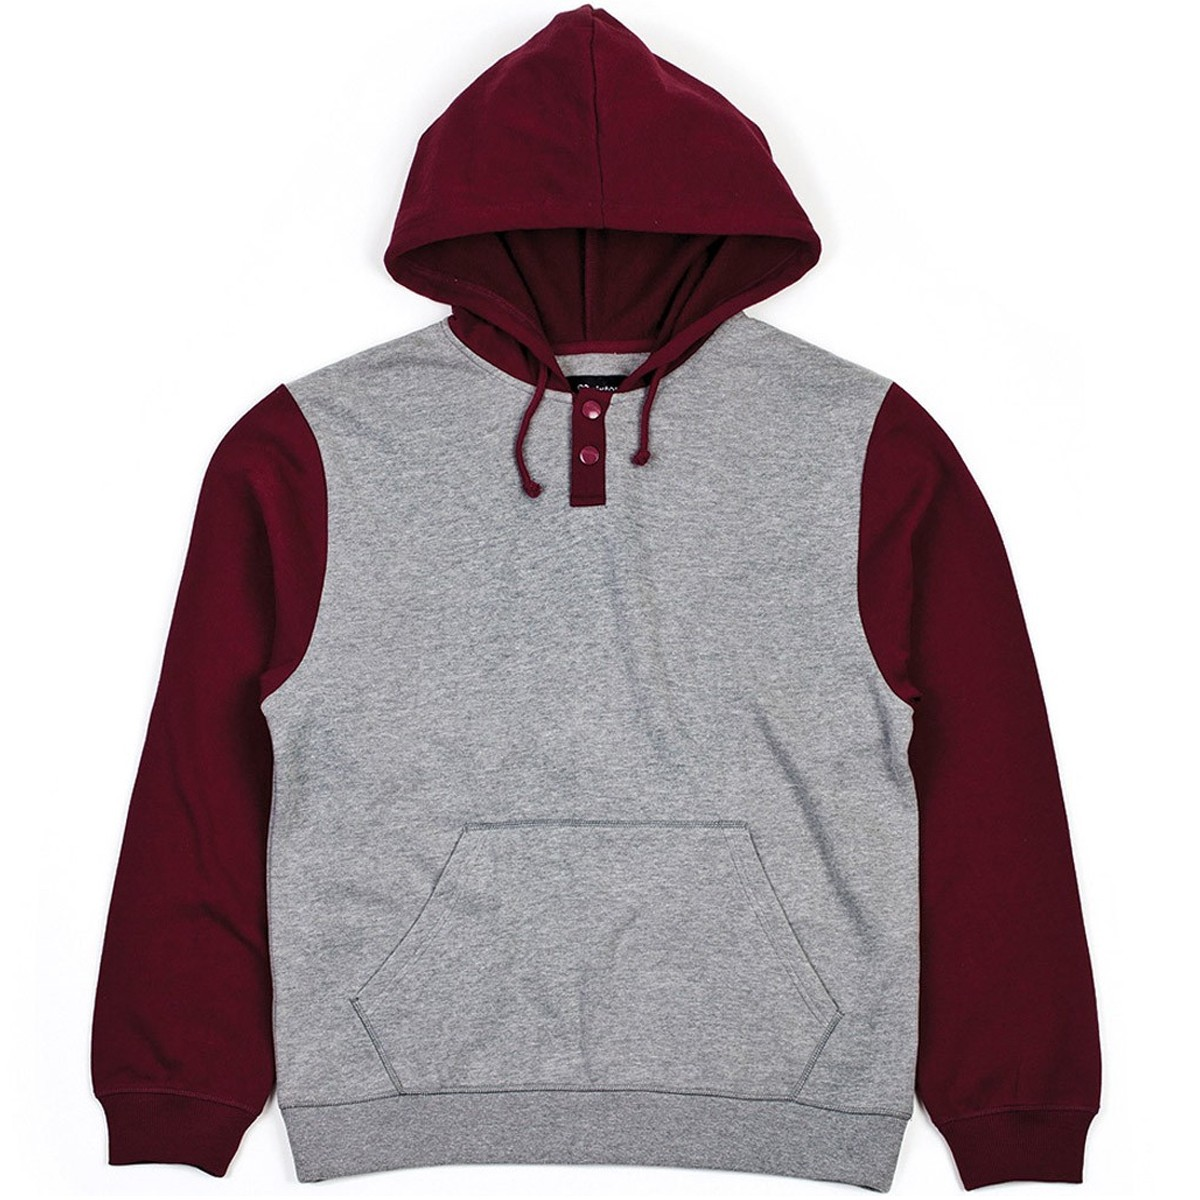 Brixton Syd II Fleece - Heather Grey   Maroon a0ddd066fef7